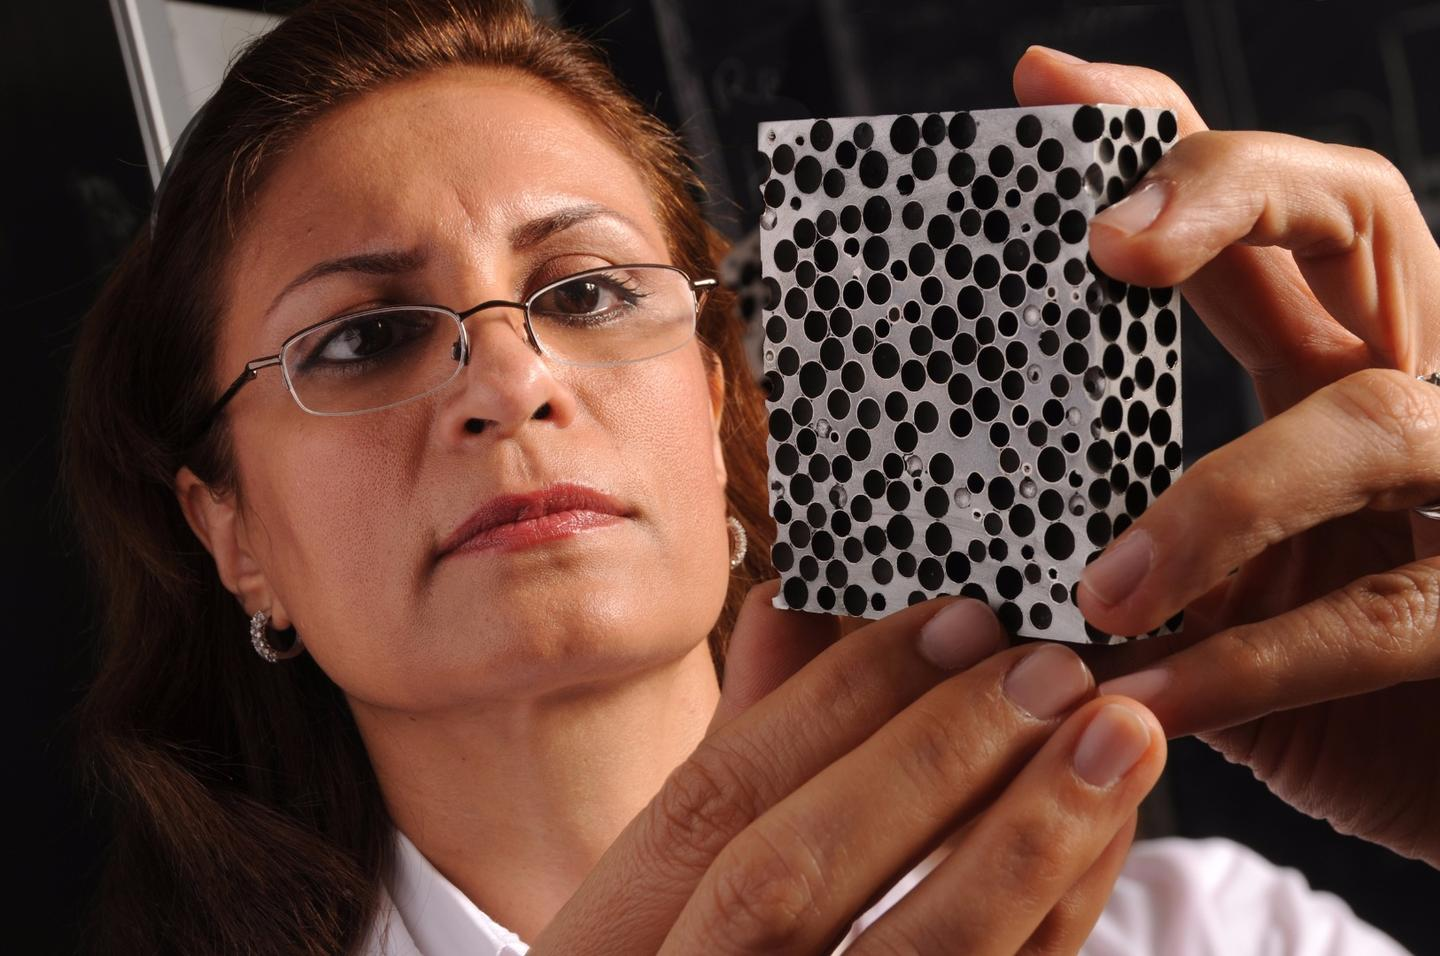 Afsaneh Rabiei with one of her composite metal foams